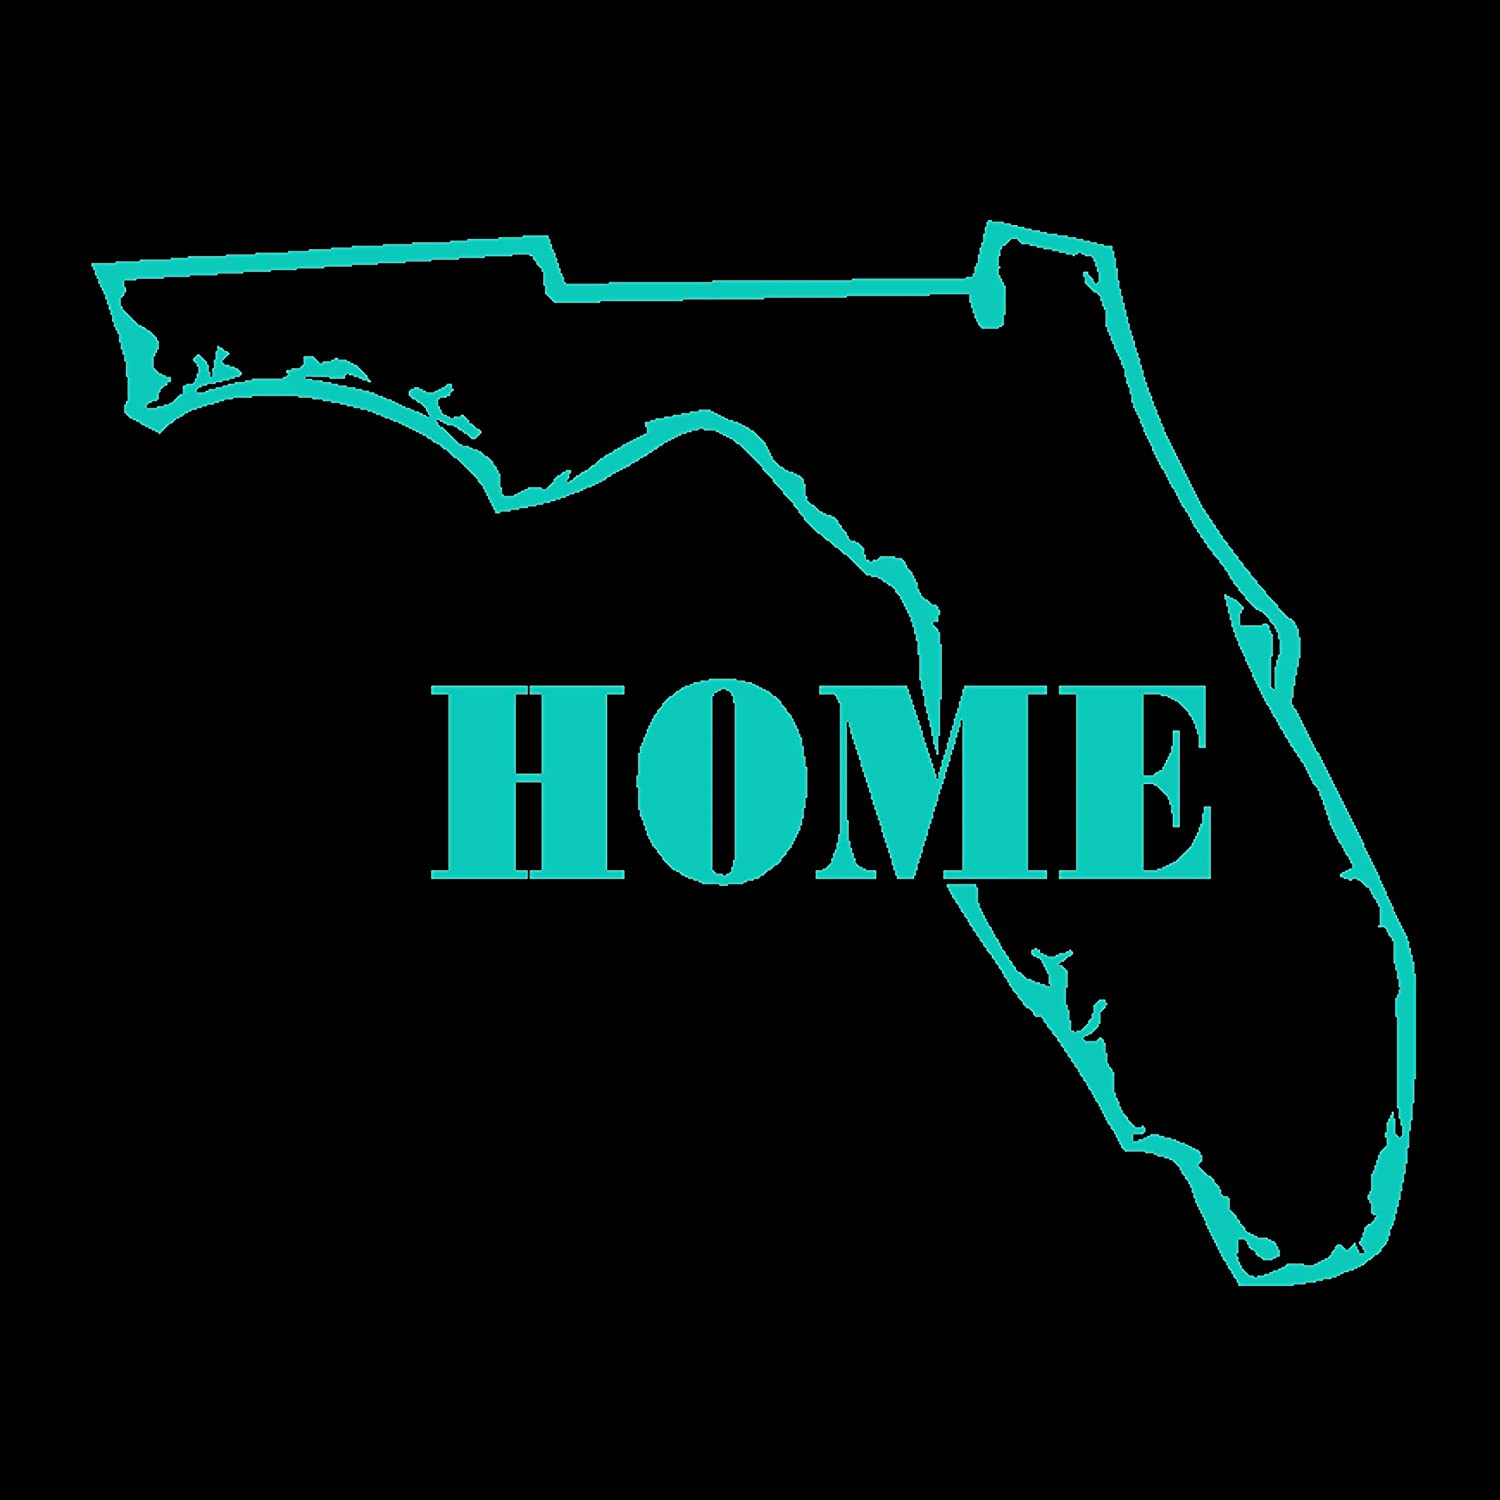 Dan's Decals Florida Home Decal, Florida is My Home, Welcome to Florida Sticker (H 6 by L 6 Inches, Teal)